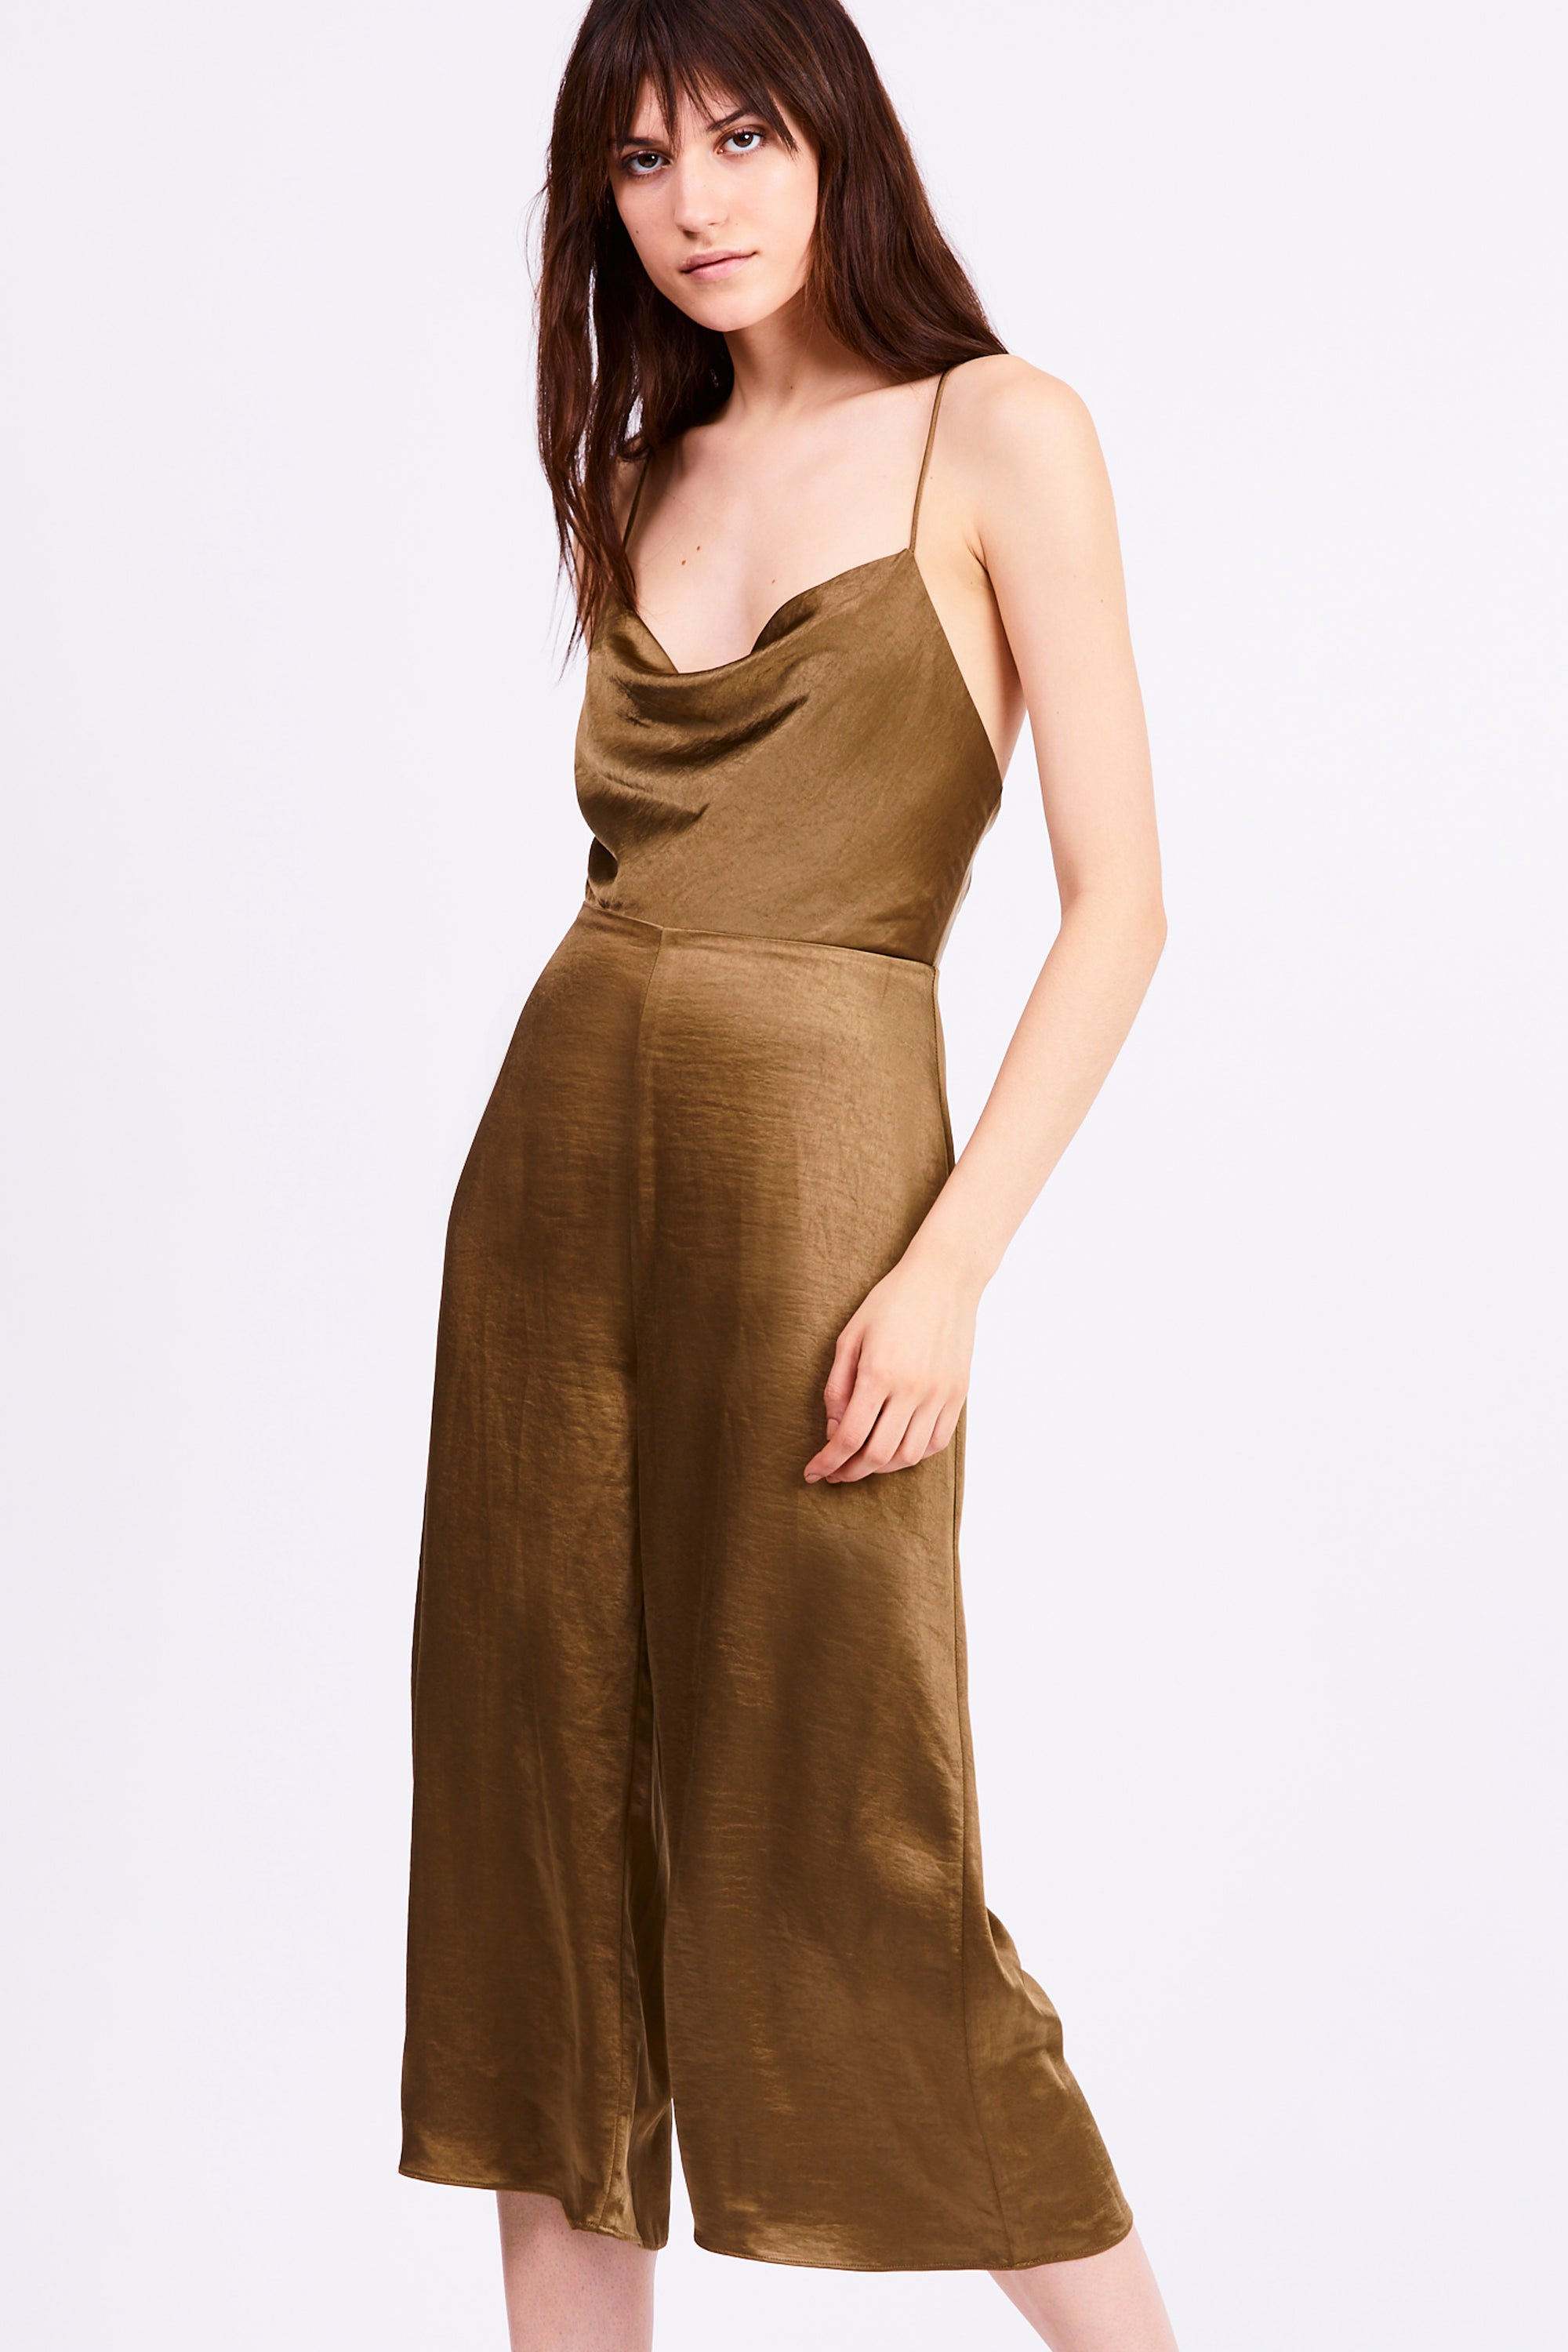 FINAL SAY BIAS JUMPSUIT | BRASS